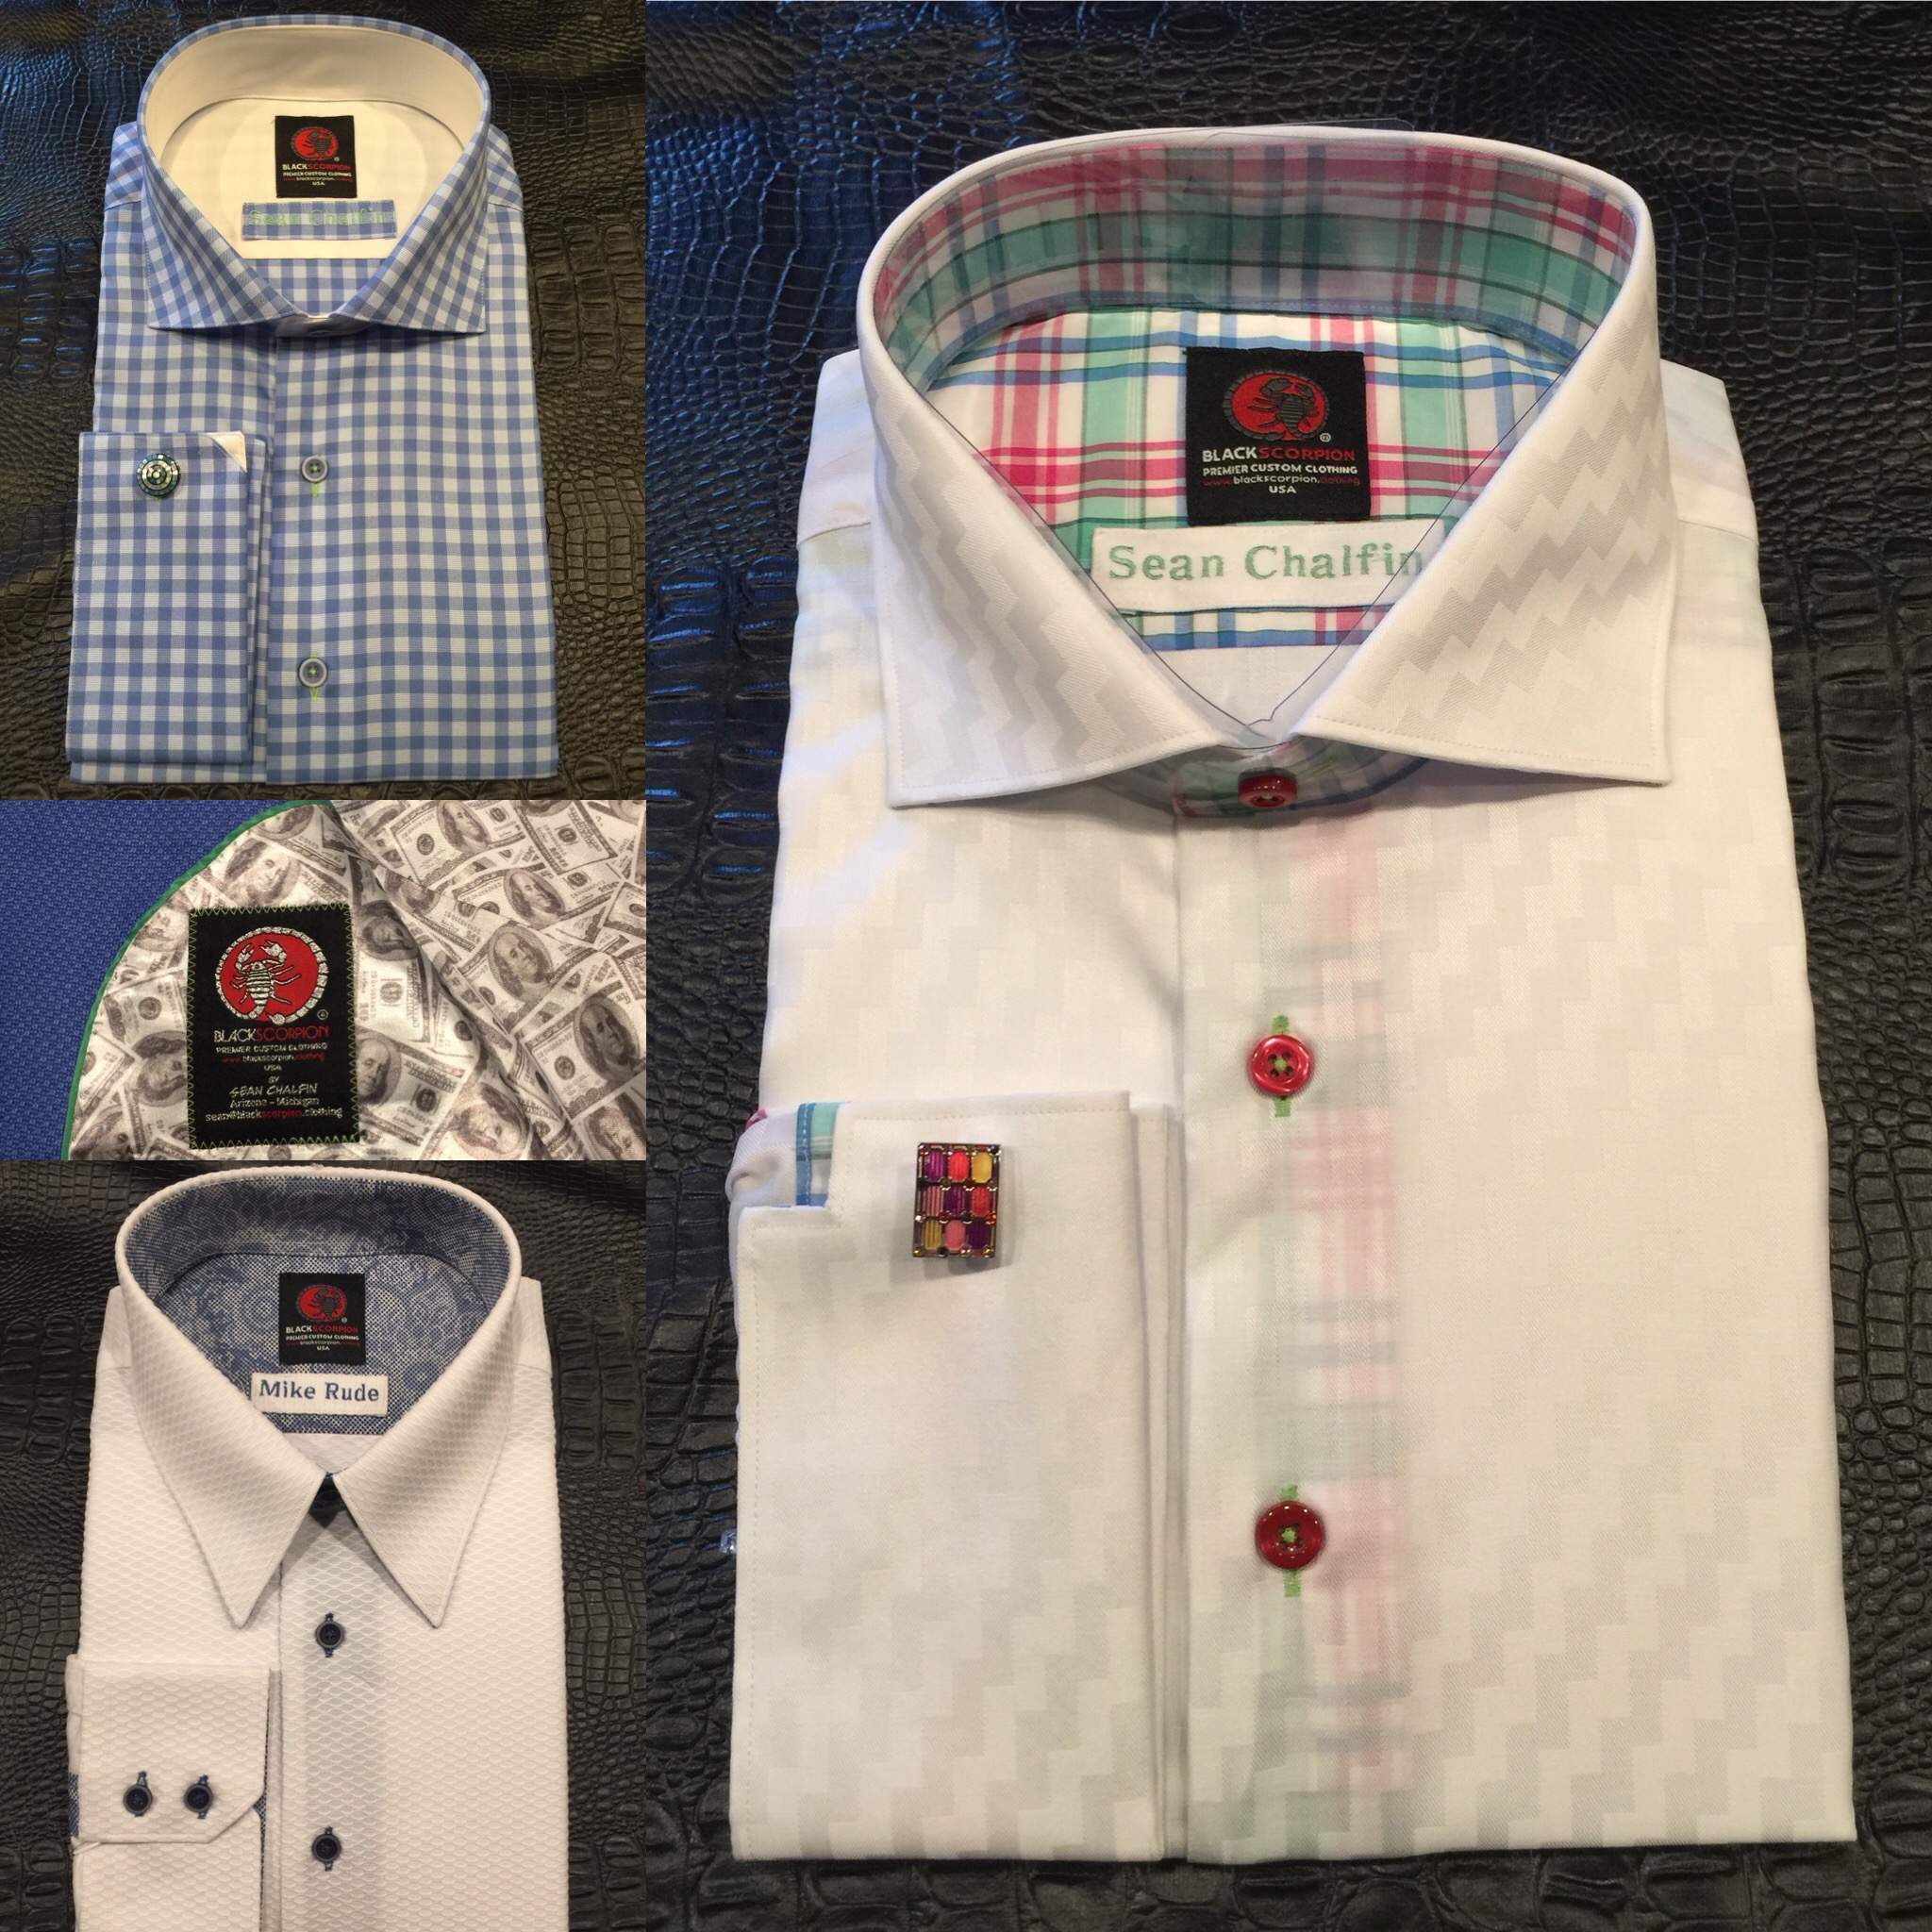 BlackScorpion custom french cuff shirt - Grand Rapids Custom Shirts and Suits, Midland Custom Shirts, Midland Custom suits